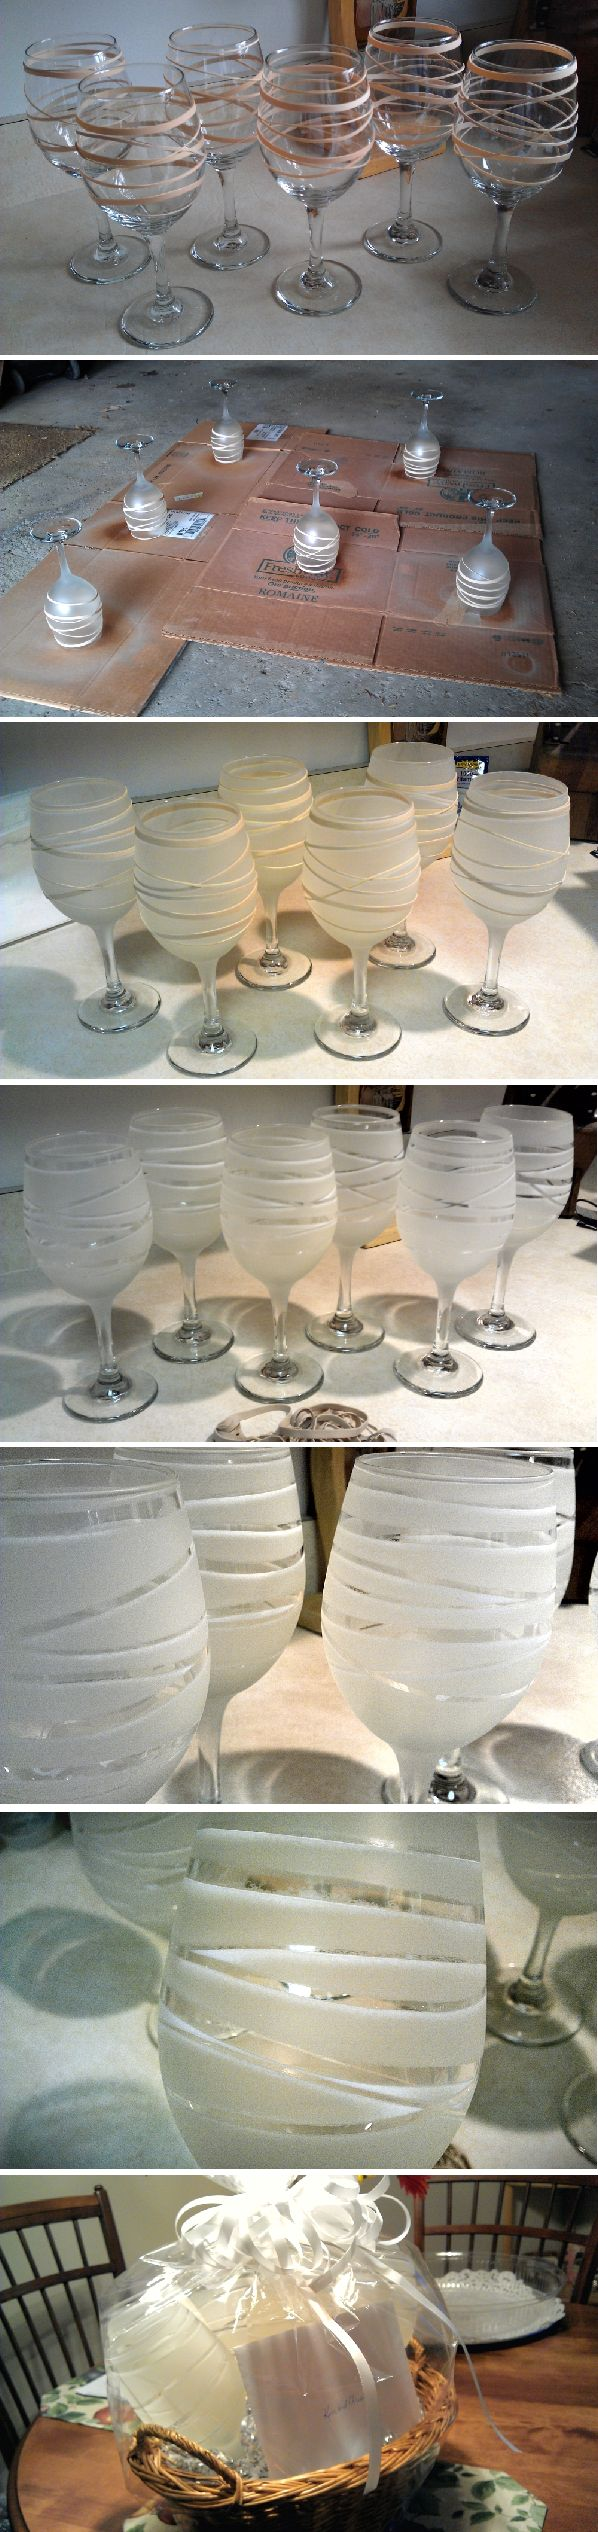 D.I.Y. Frosted Wine Glasses! I made these - using dollar store wine glasses, assorted rubber bands and frosted glass spray paint - for my mom to give as a gift at a bridal shower and they actually turned out pretty well! (Sorry for the grainy pictures, I was using my phone to take the pix): Dollar Stores, Glasses Sprays, Gifts Ideas, Frostings Wine, Sprays Paintings, Stores Wine, Wine Glasses, Frostings Glasses, Rubber Band